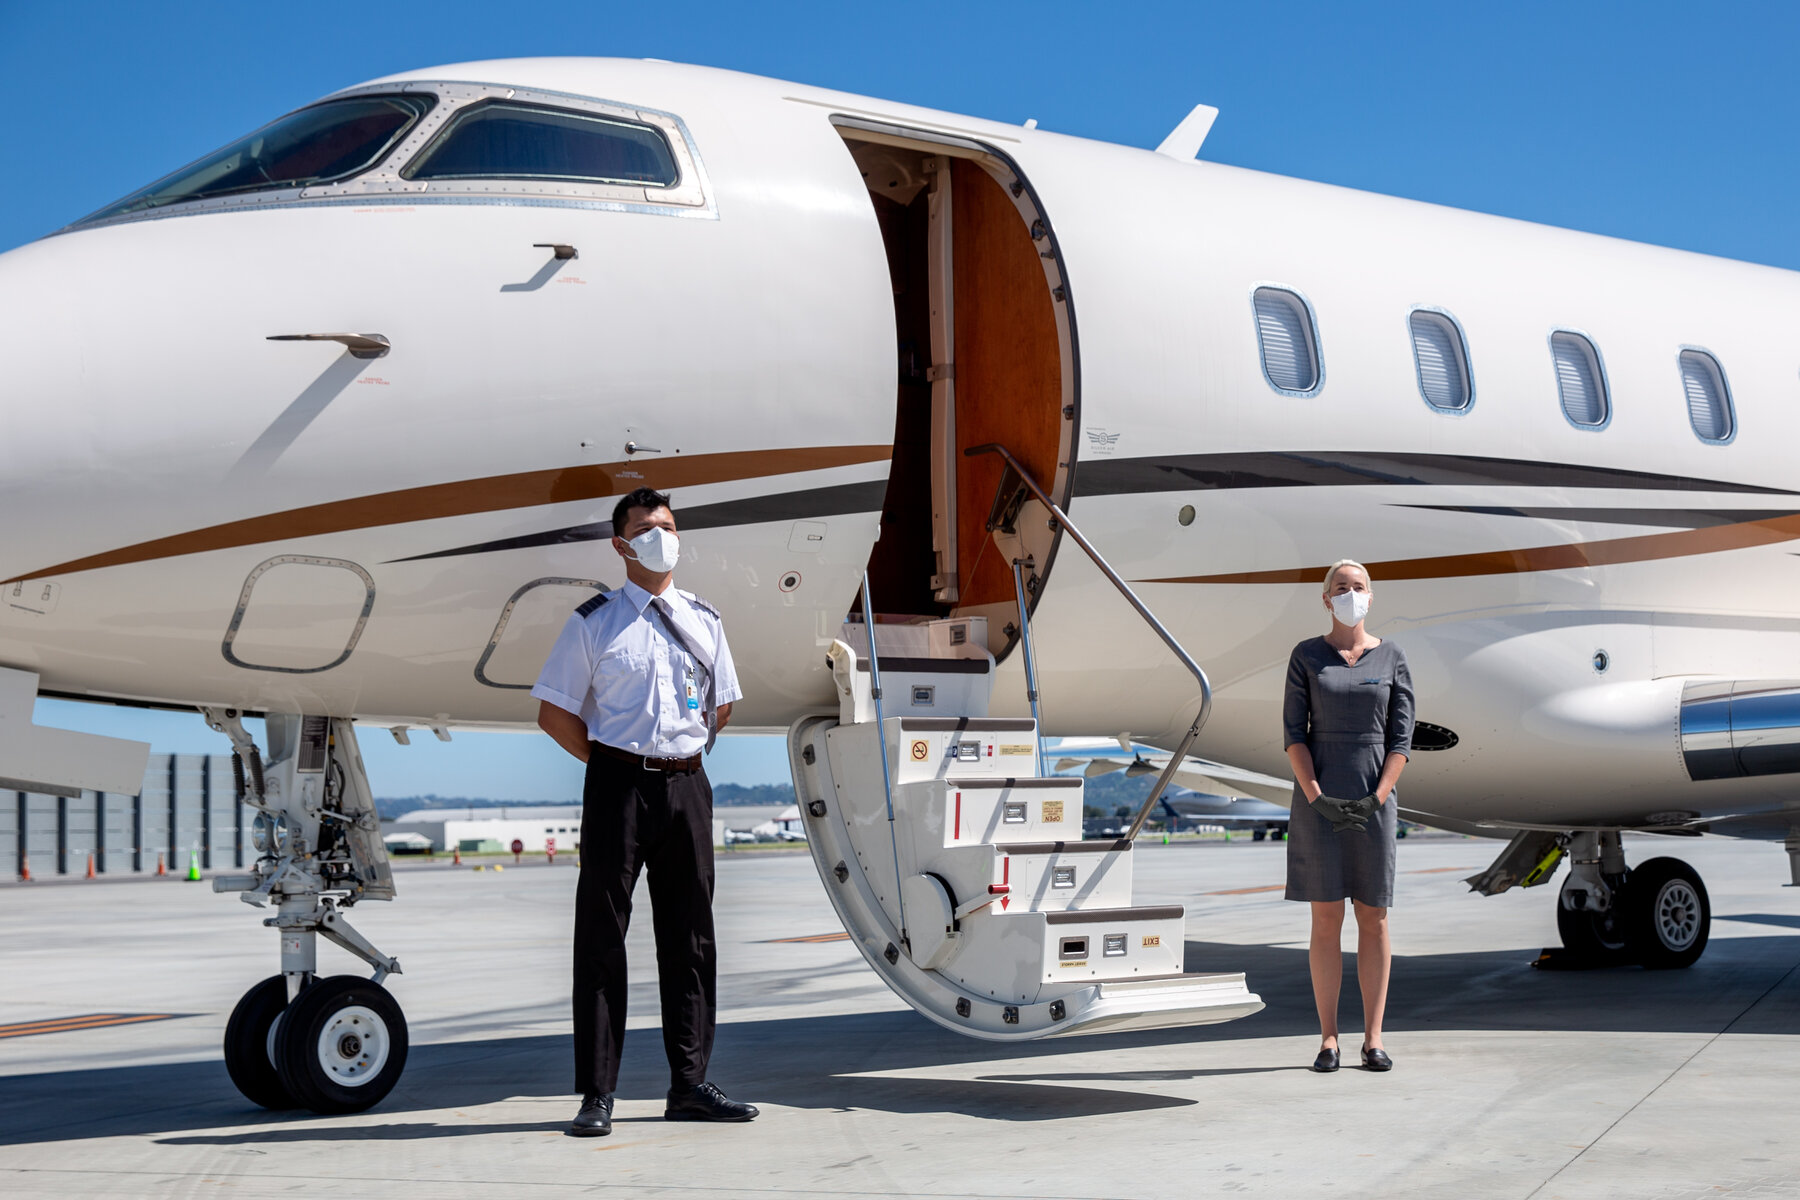 NIGERIAN MAN SHOWS OFF AN ESTATE IN USA WHERE EVERYONE HAS A PRIVATE AIRPLANE